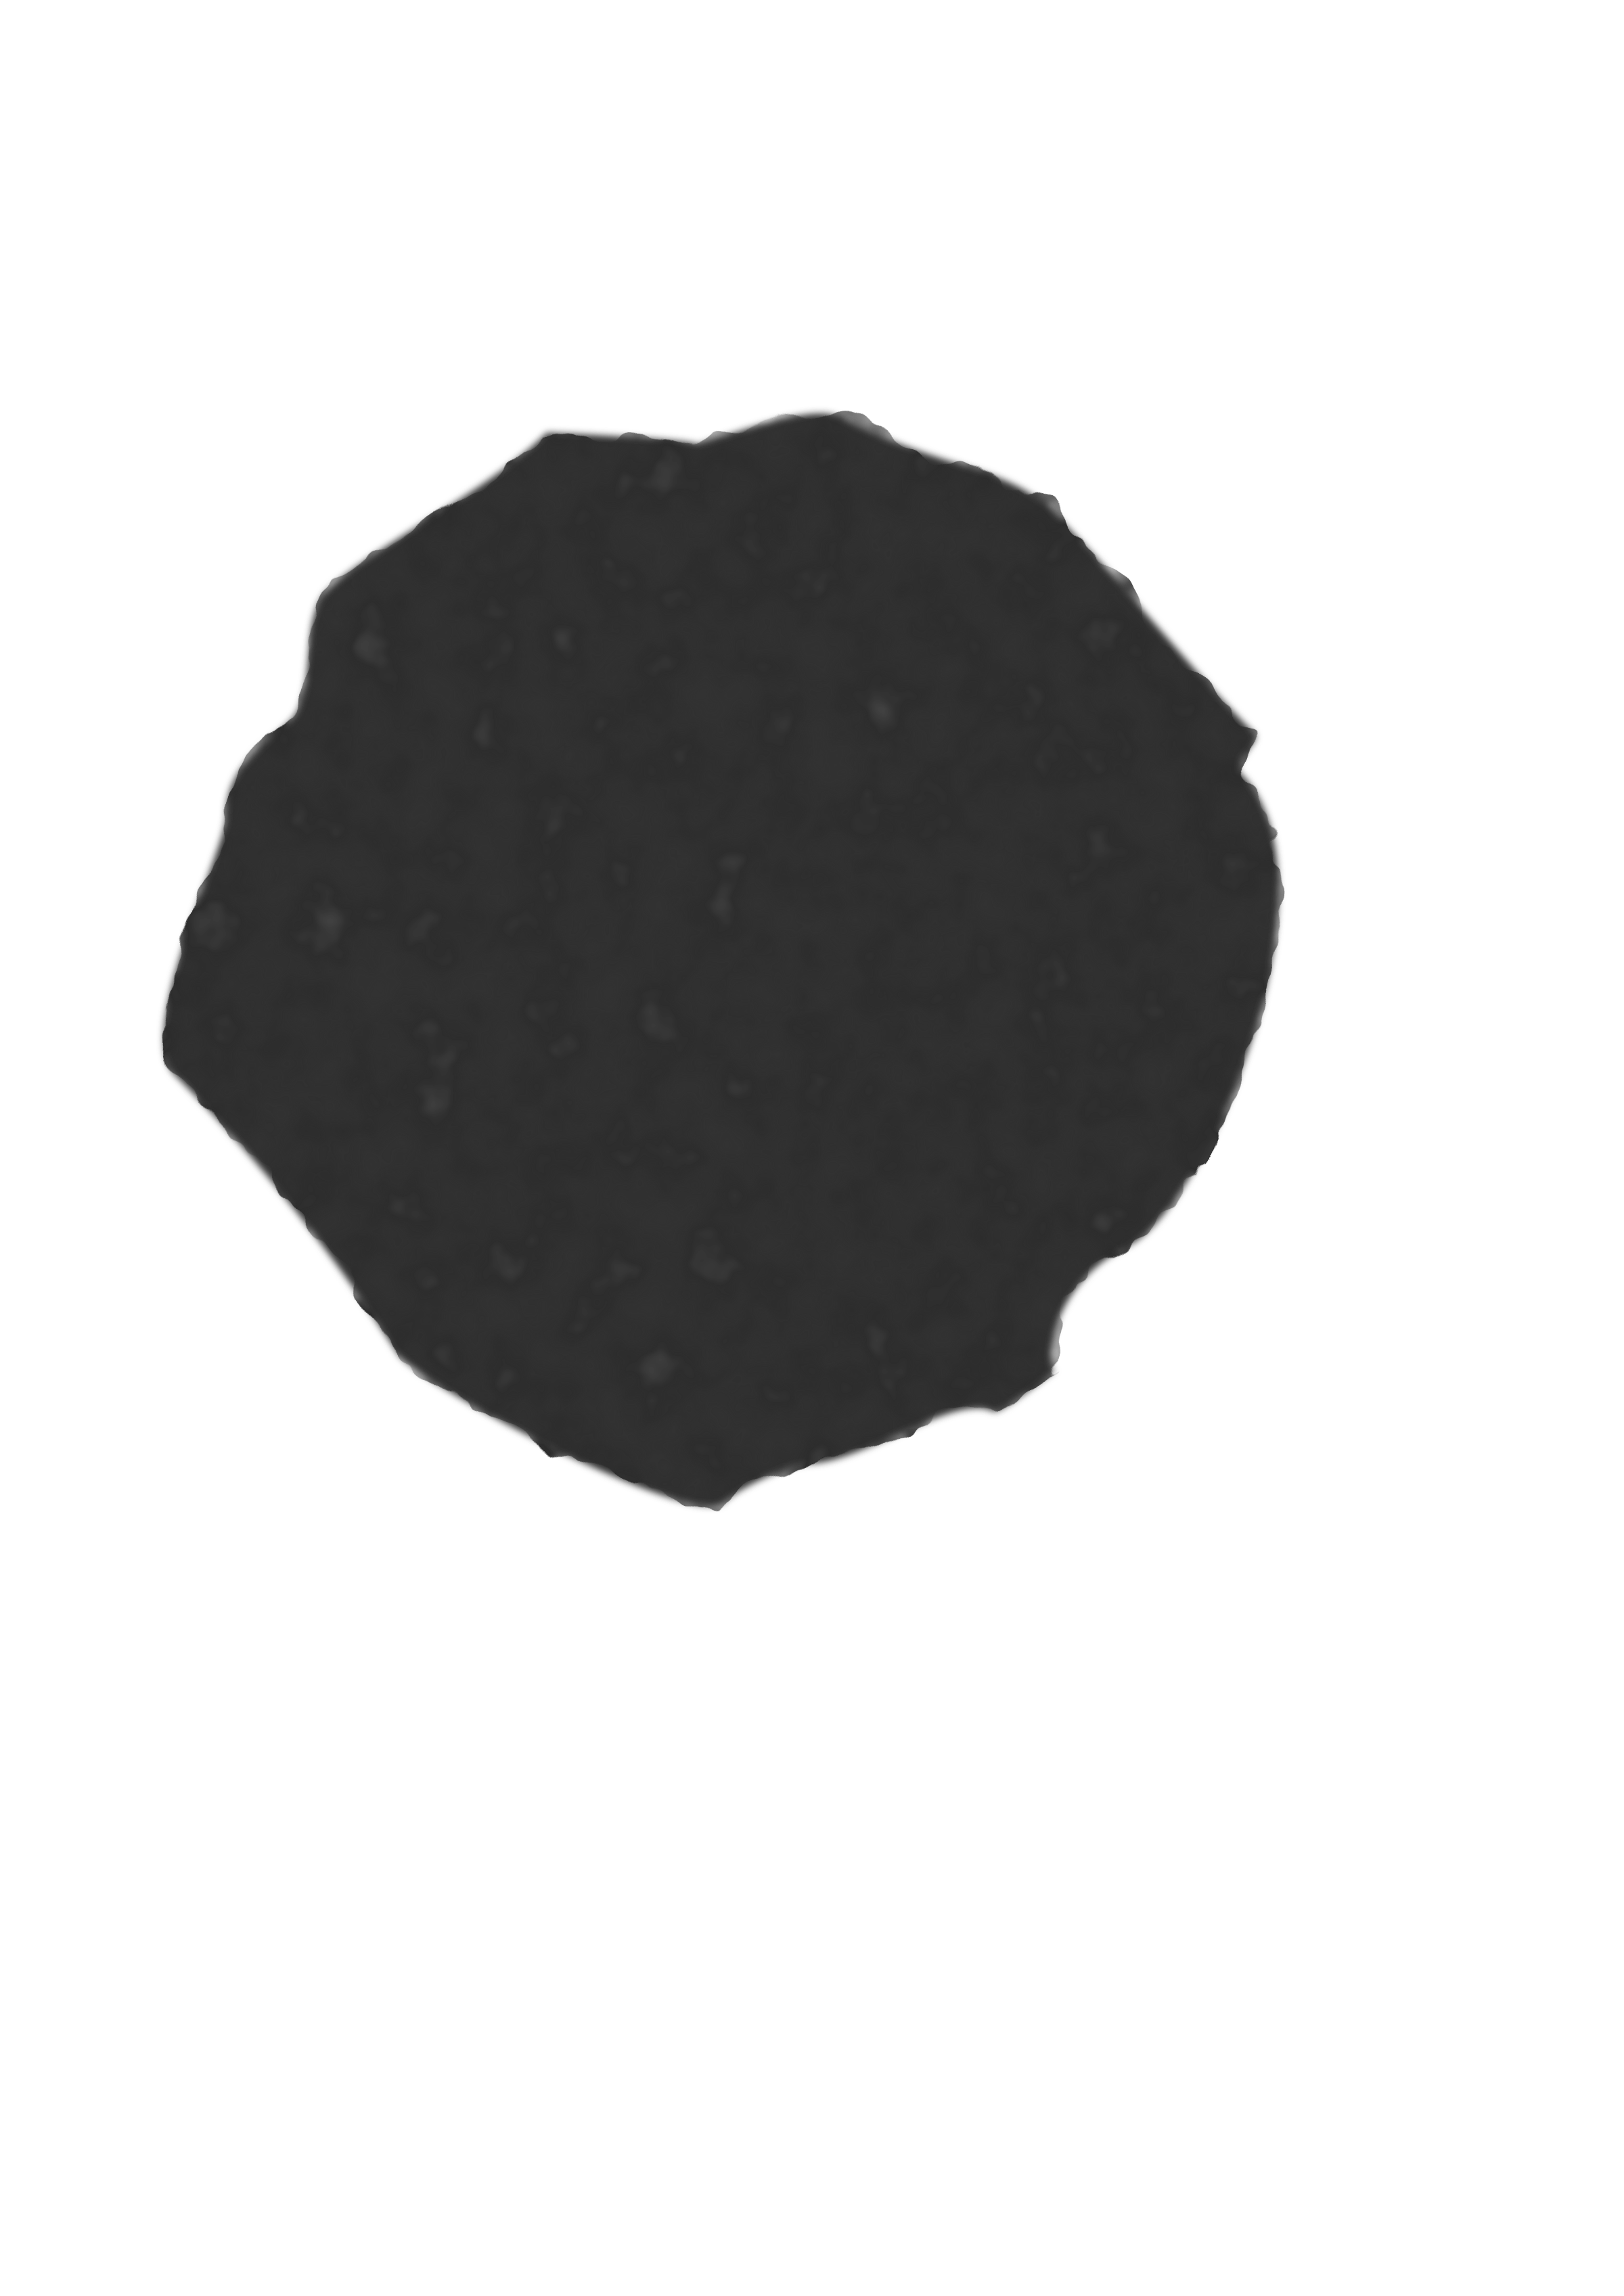 asteroid clipart transparent - photo #14